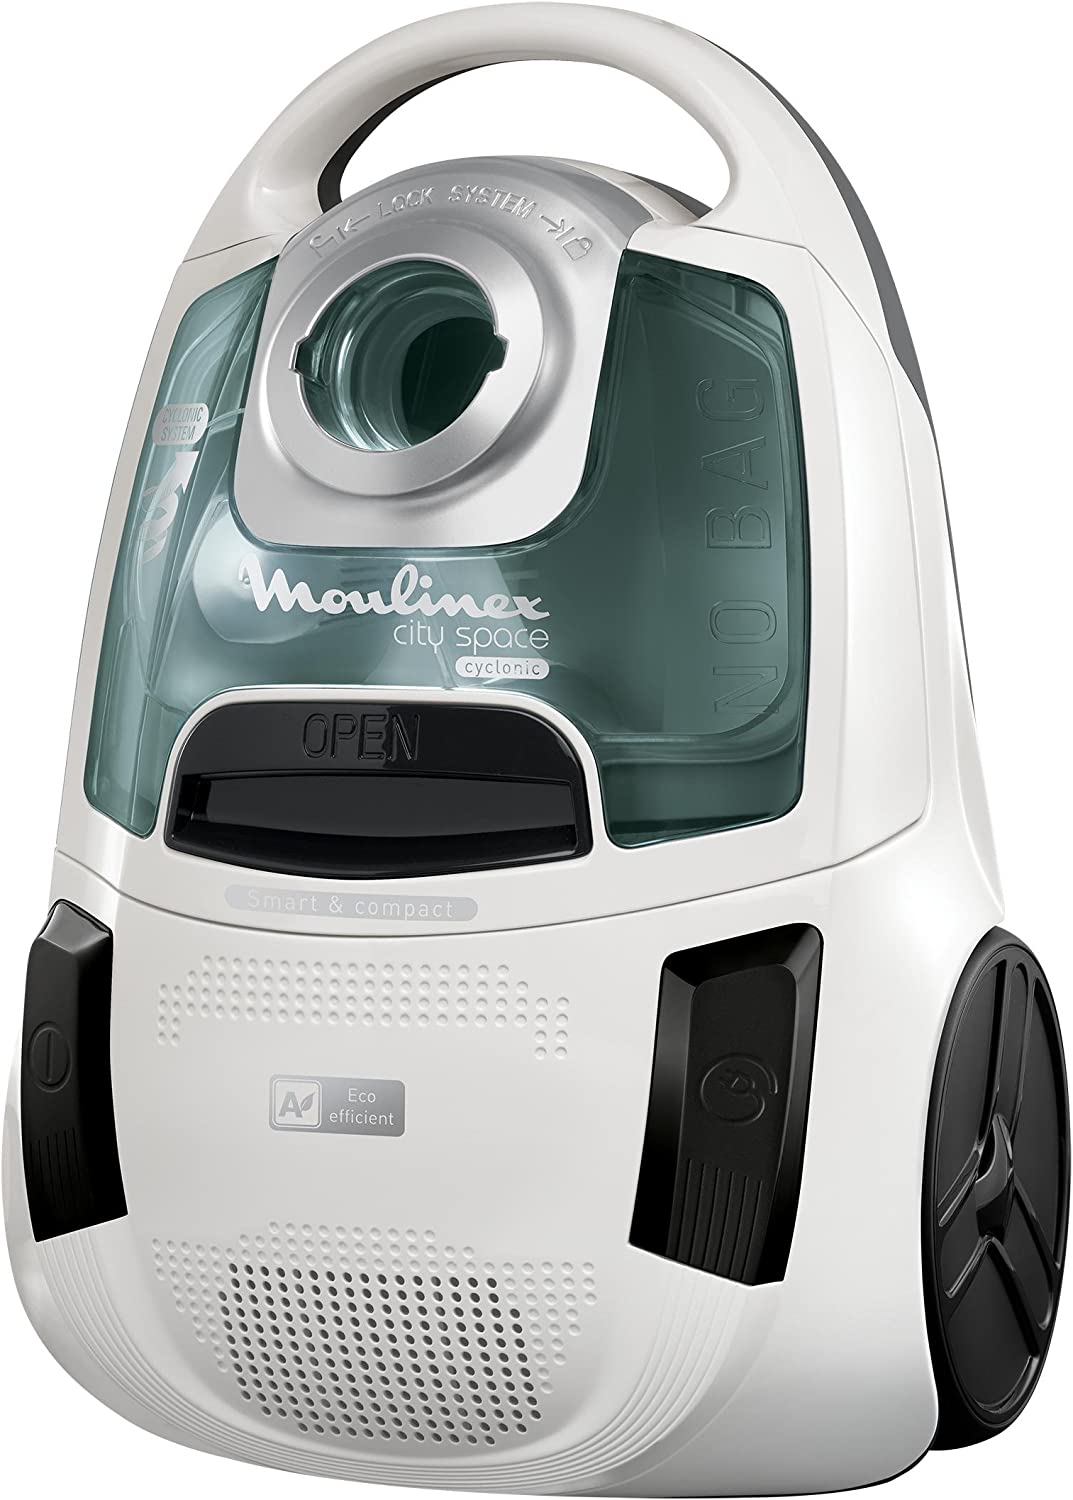 Moulinex City Space Cyclonic Aspirador sin bolsa: Amazon.es: Hogar